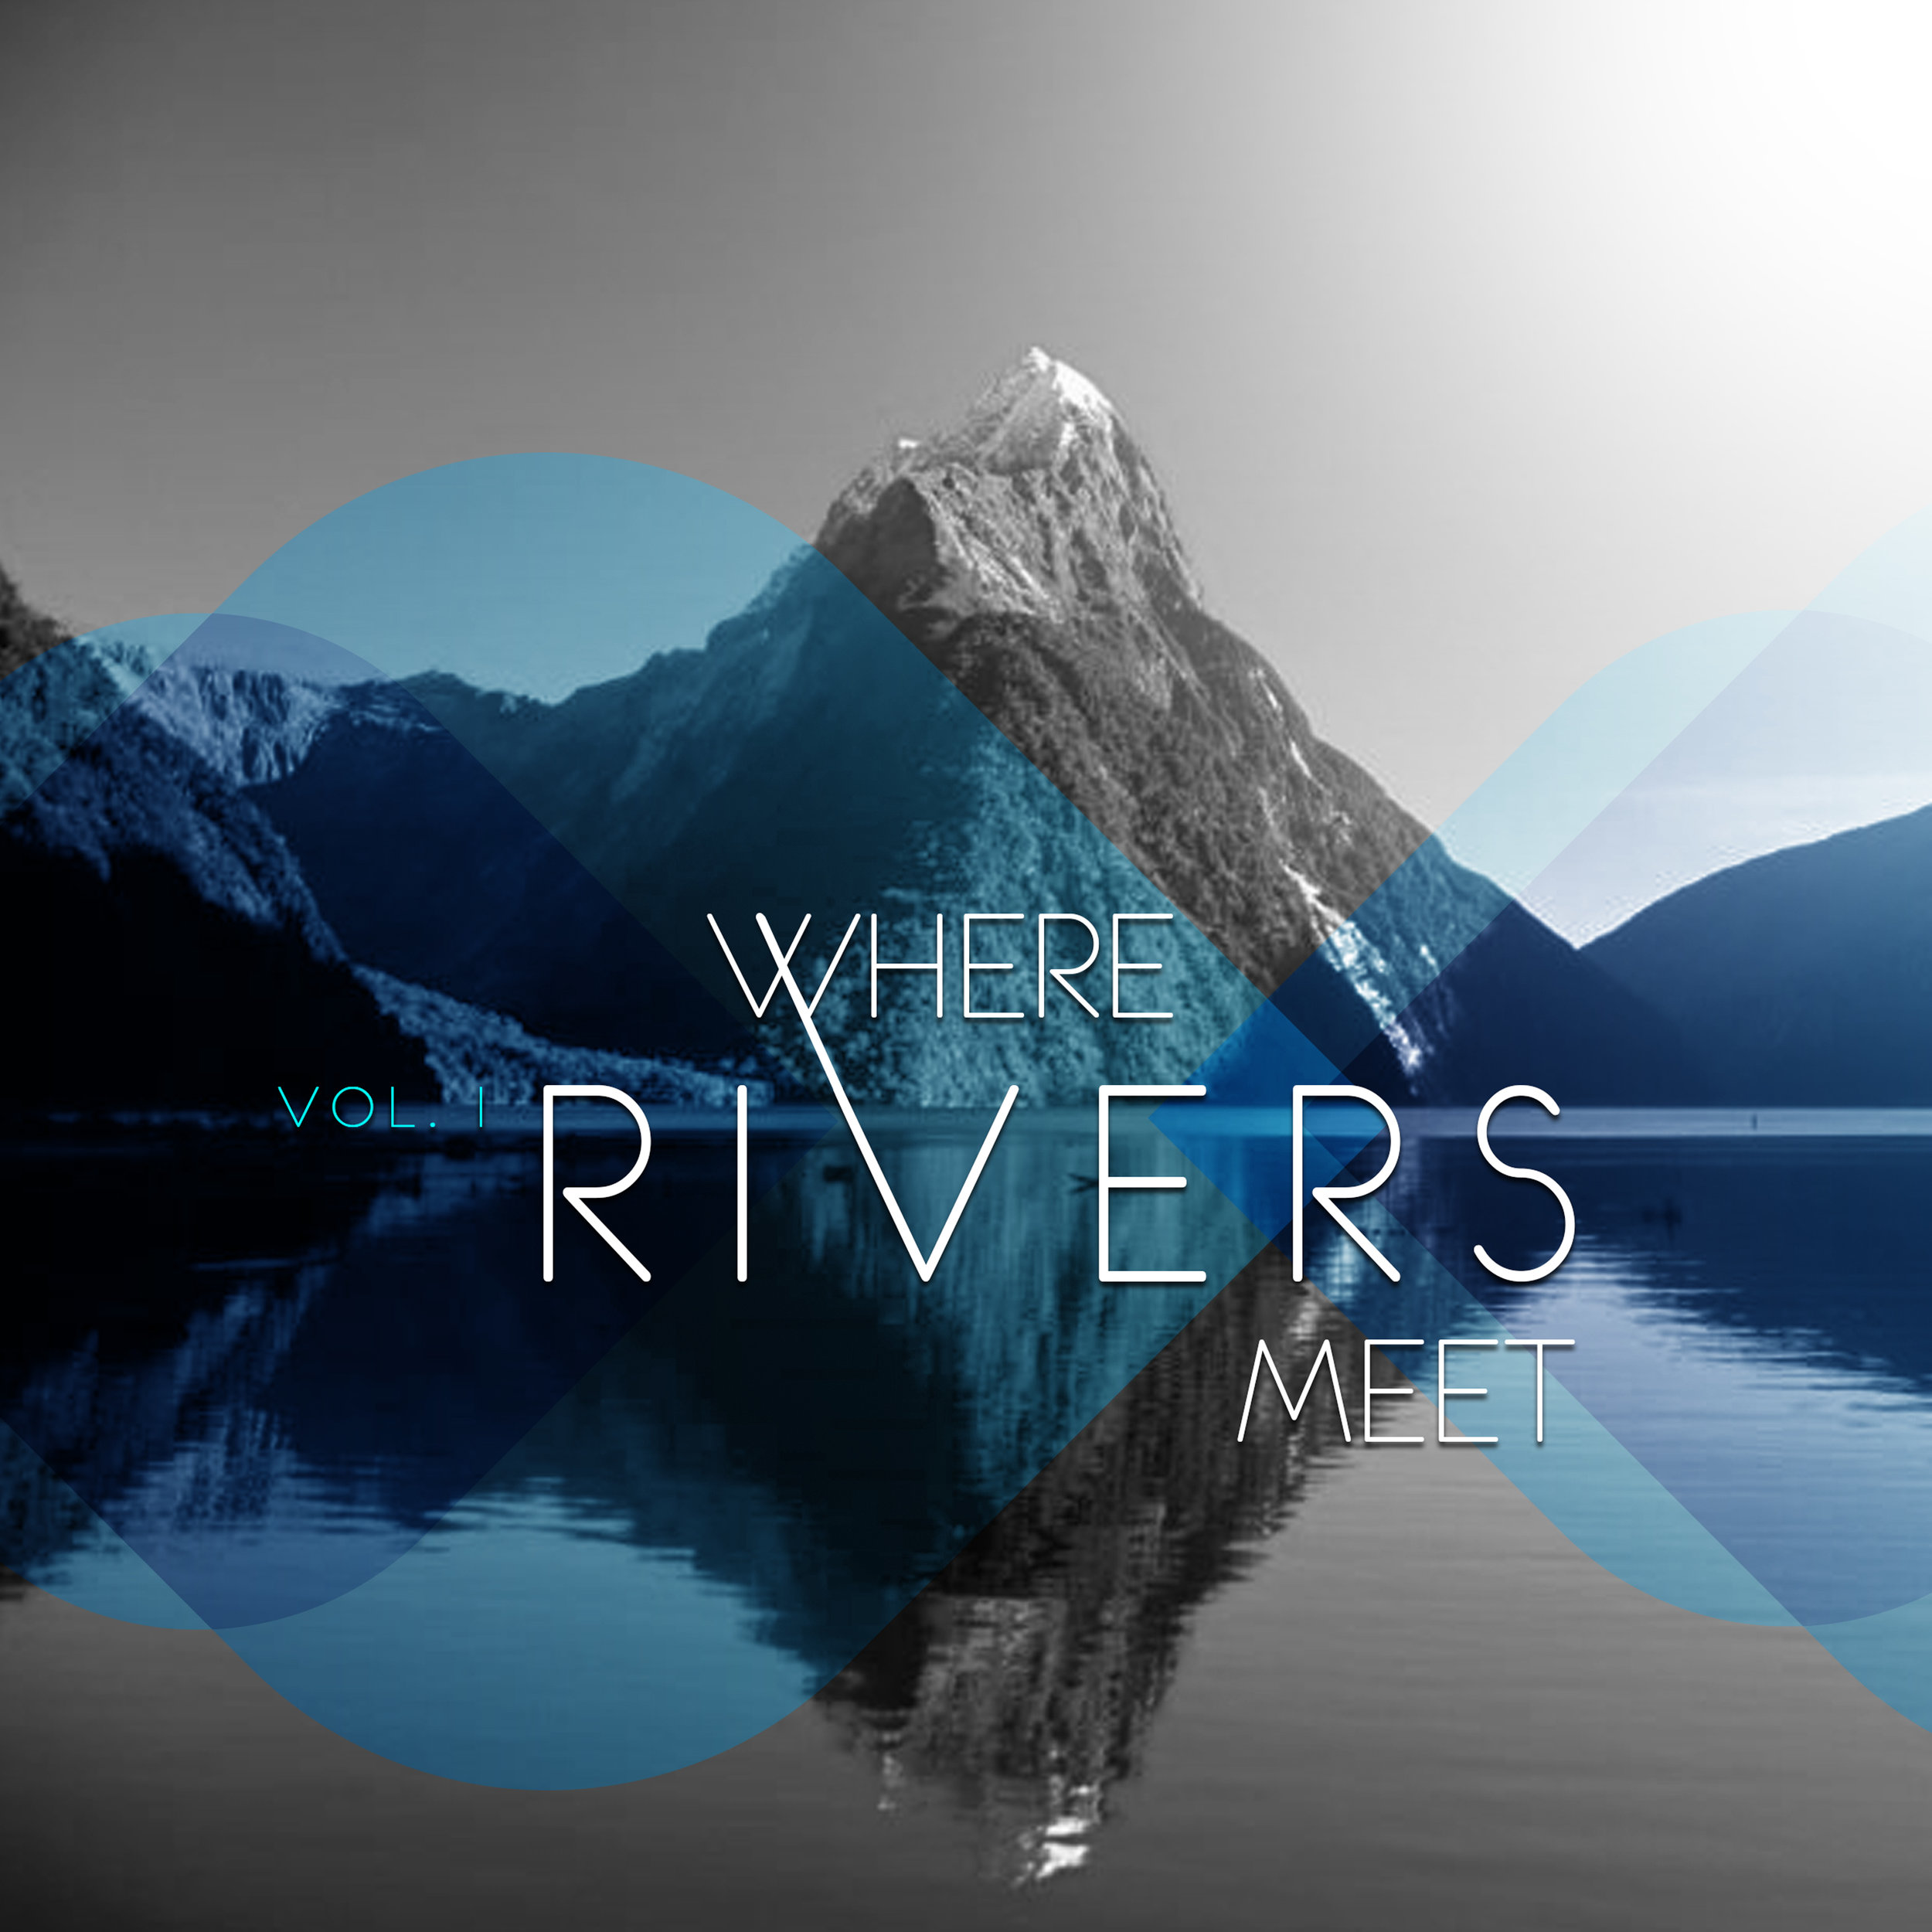 Qweyonoh-EP-Where-Rivers-Meet-Vol-1.jpg